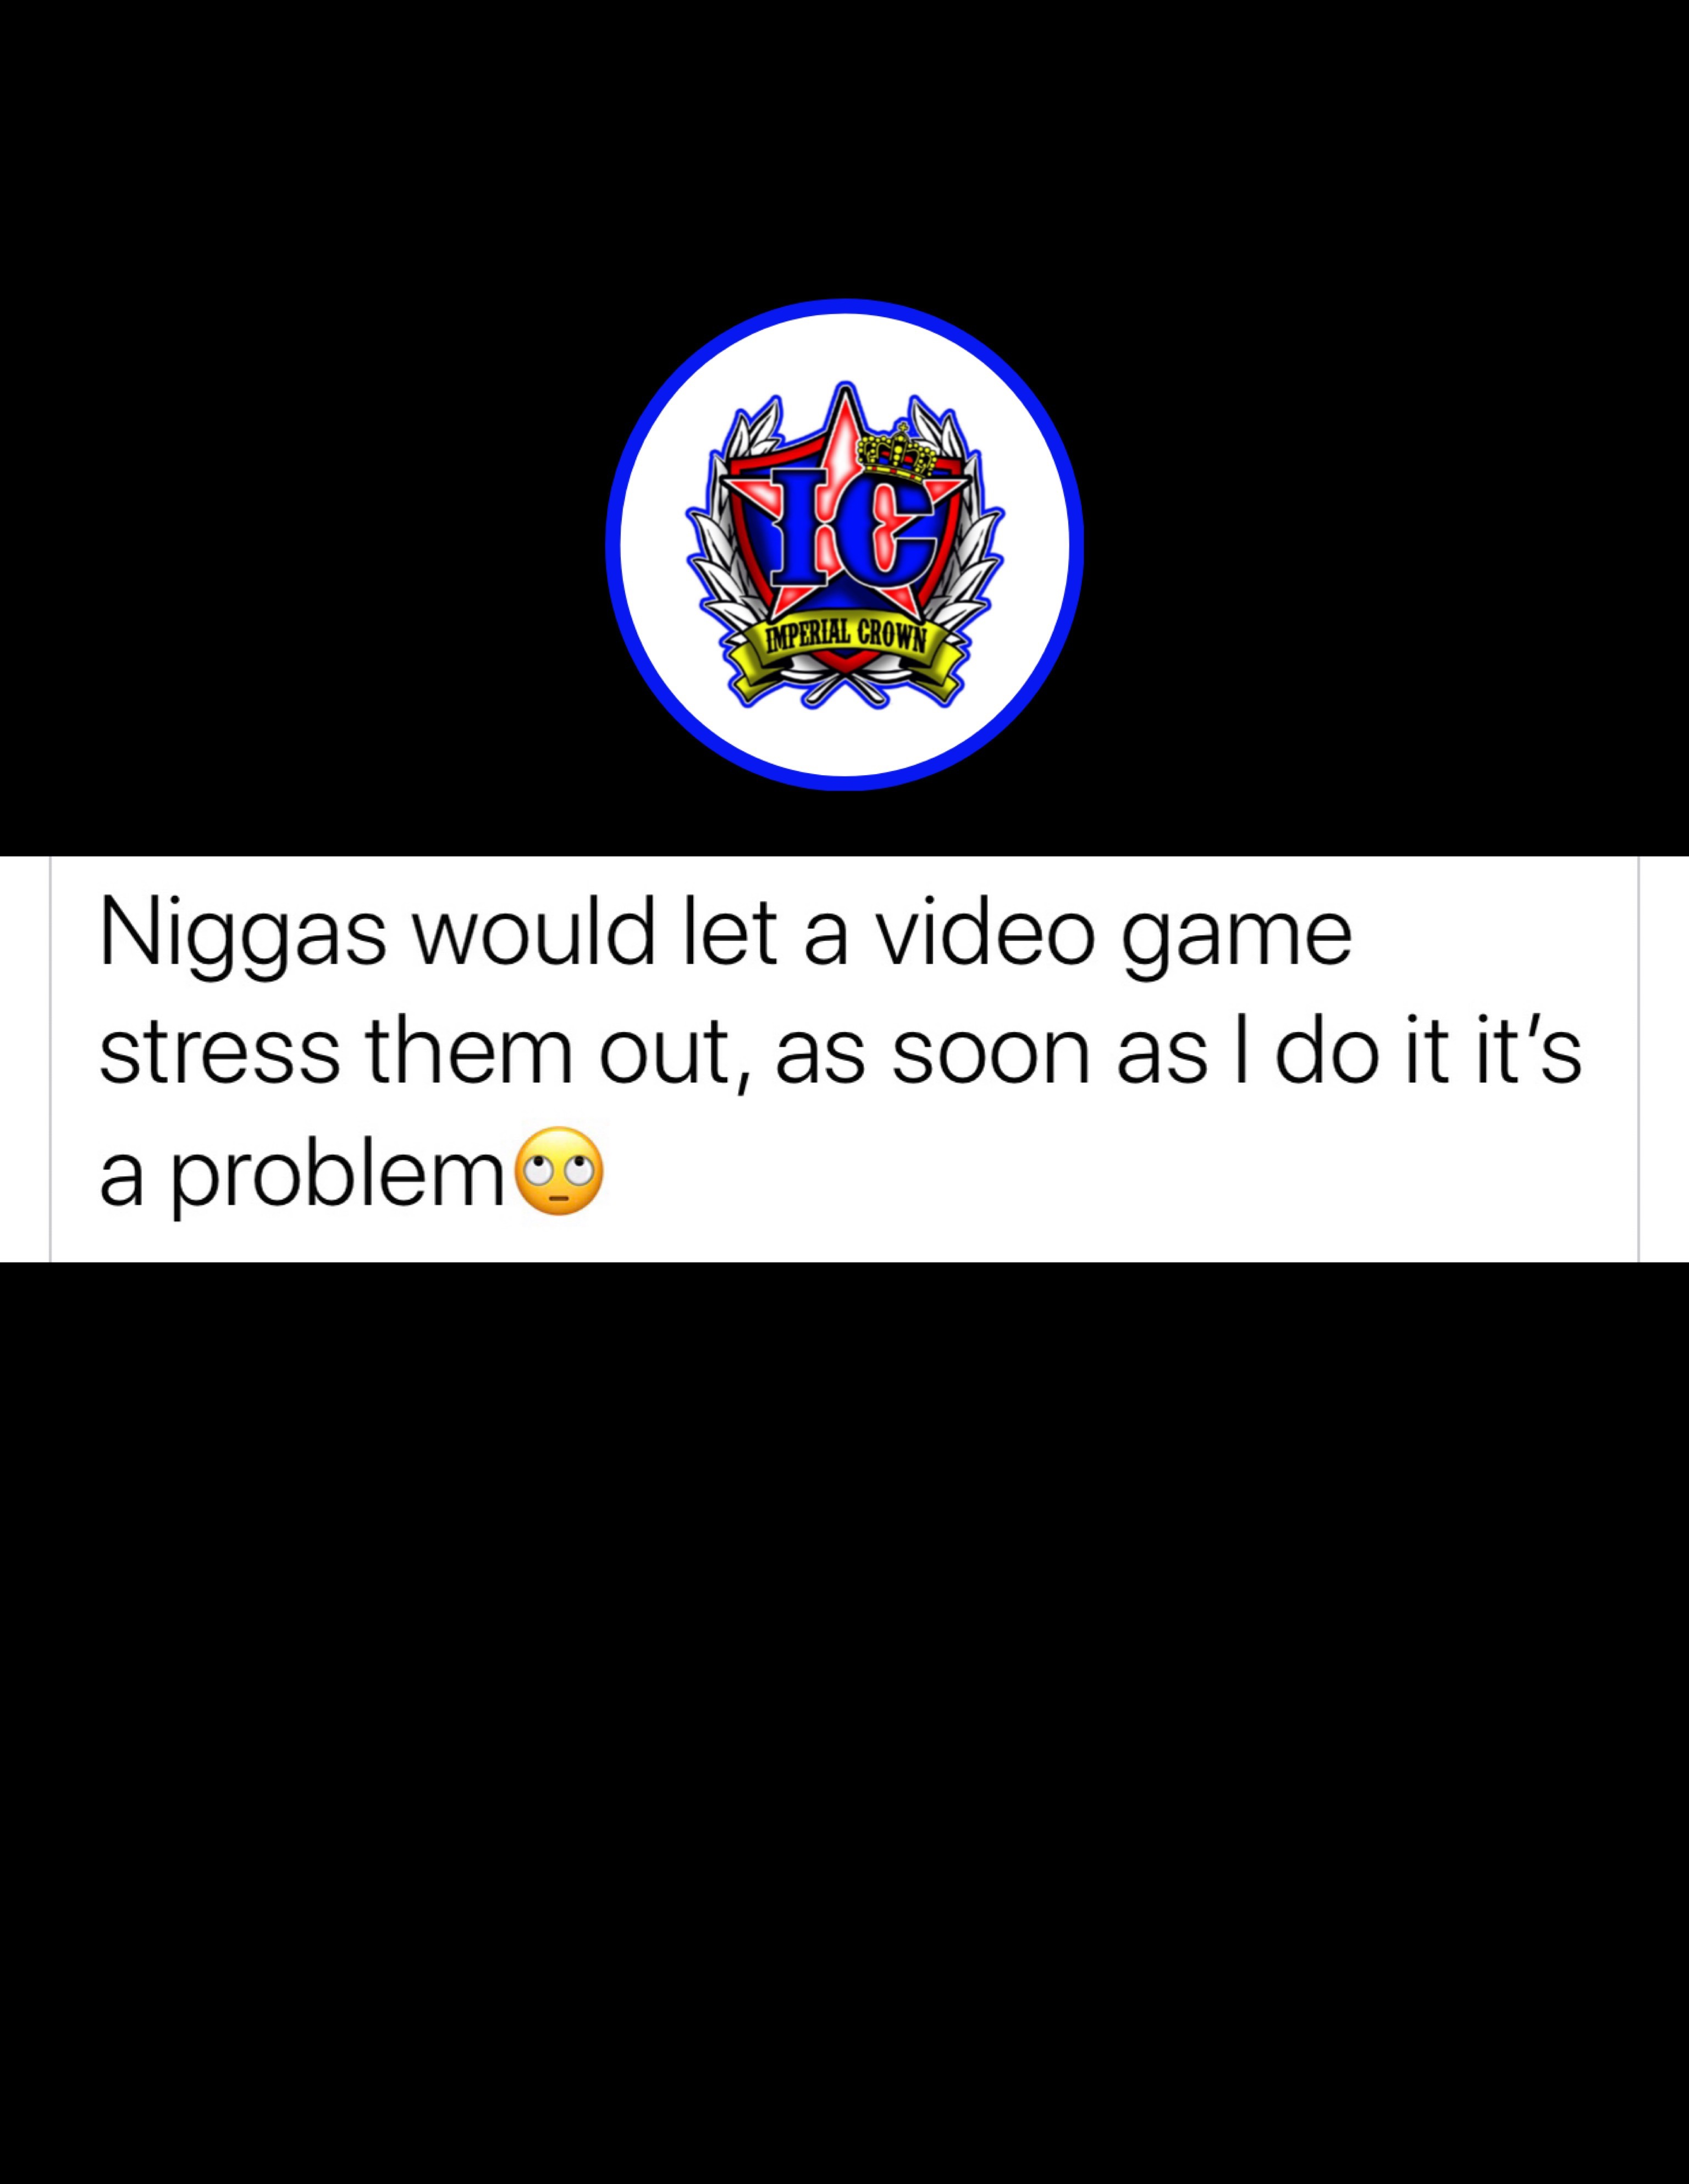 Niggas would let a video game stress them out as soon as I do it it's a problem